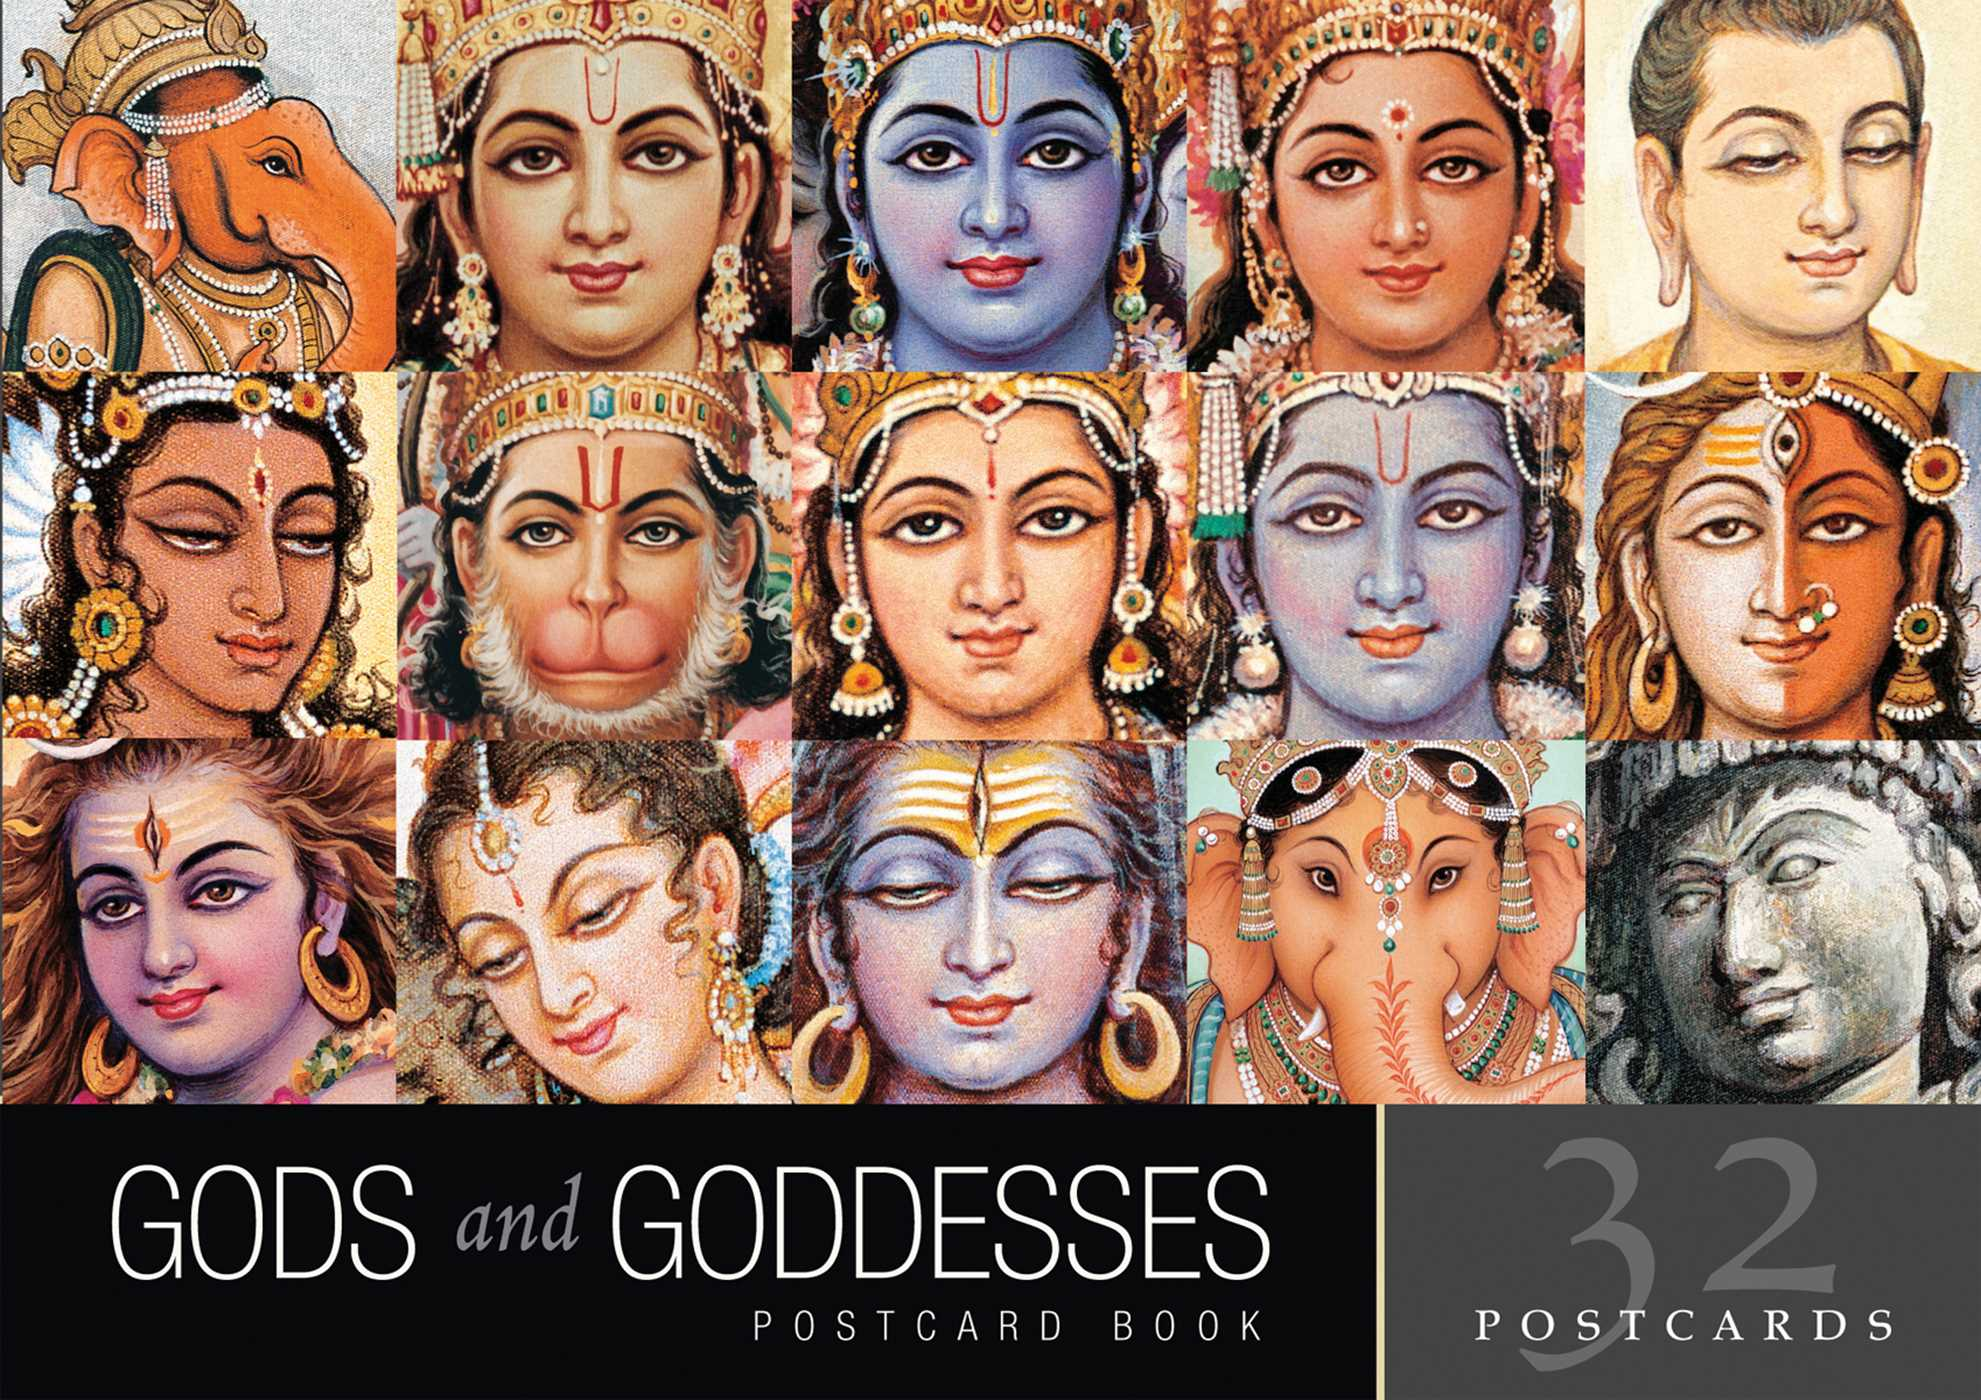 Gods and Goddesses Postcard Book | Book by Indra Sharma | Official ...